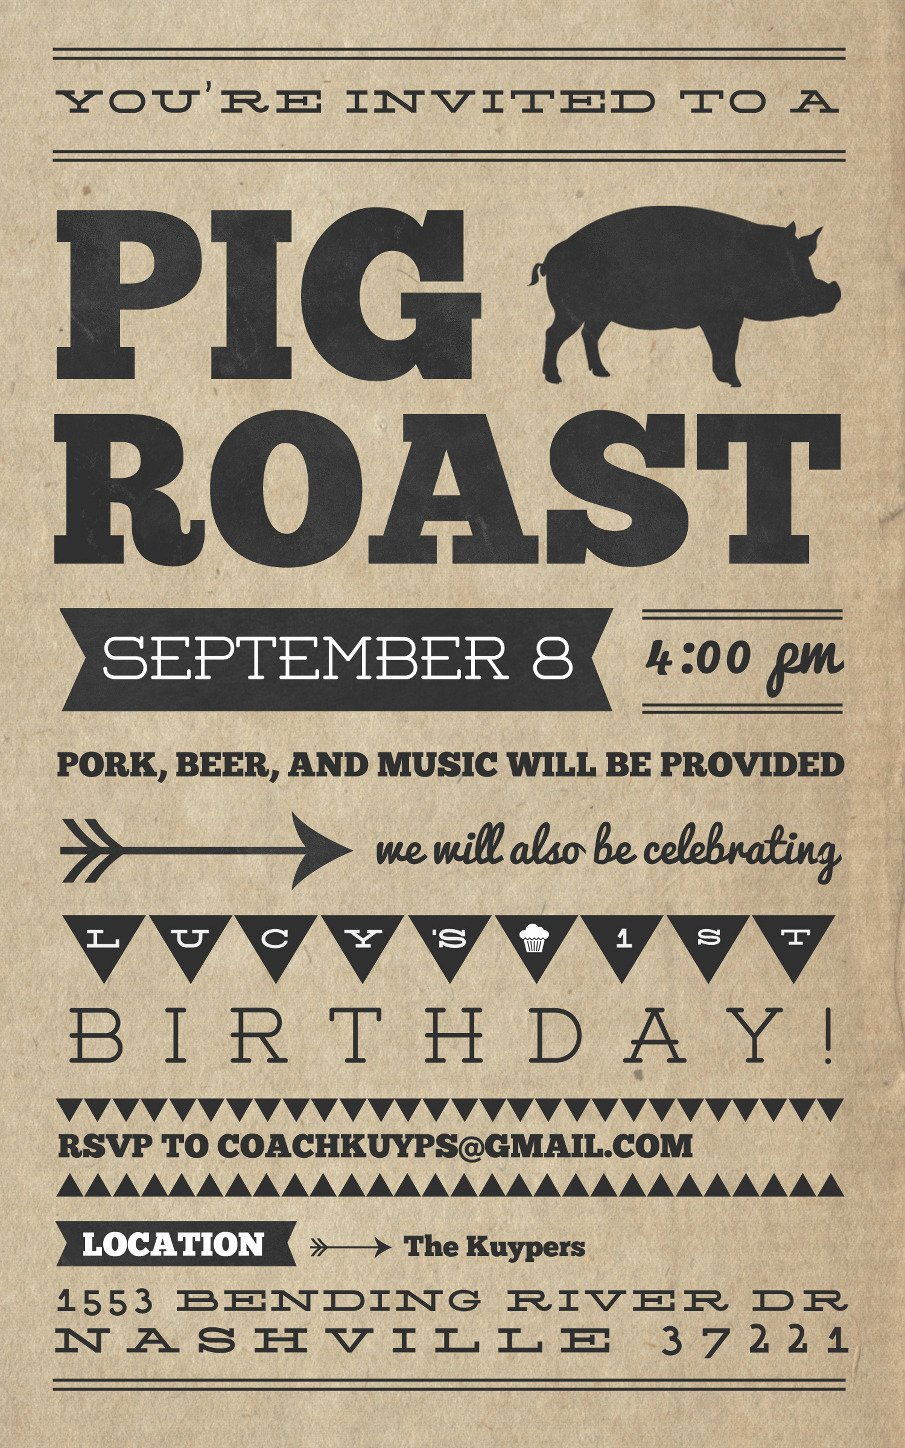 Pig Roast Invitation Template Free Elegant Pig Roast Invitation Templates